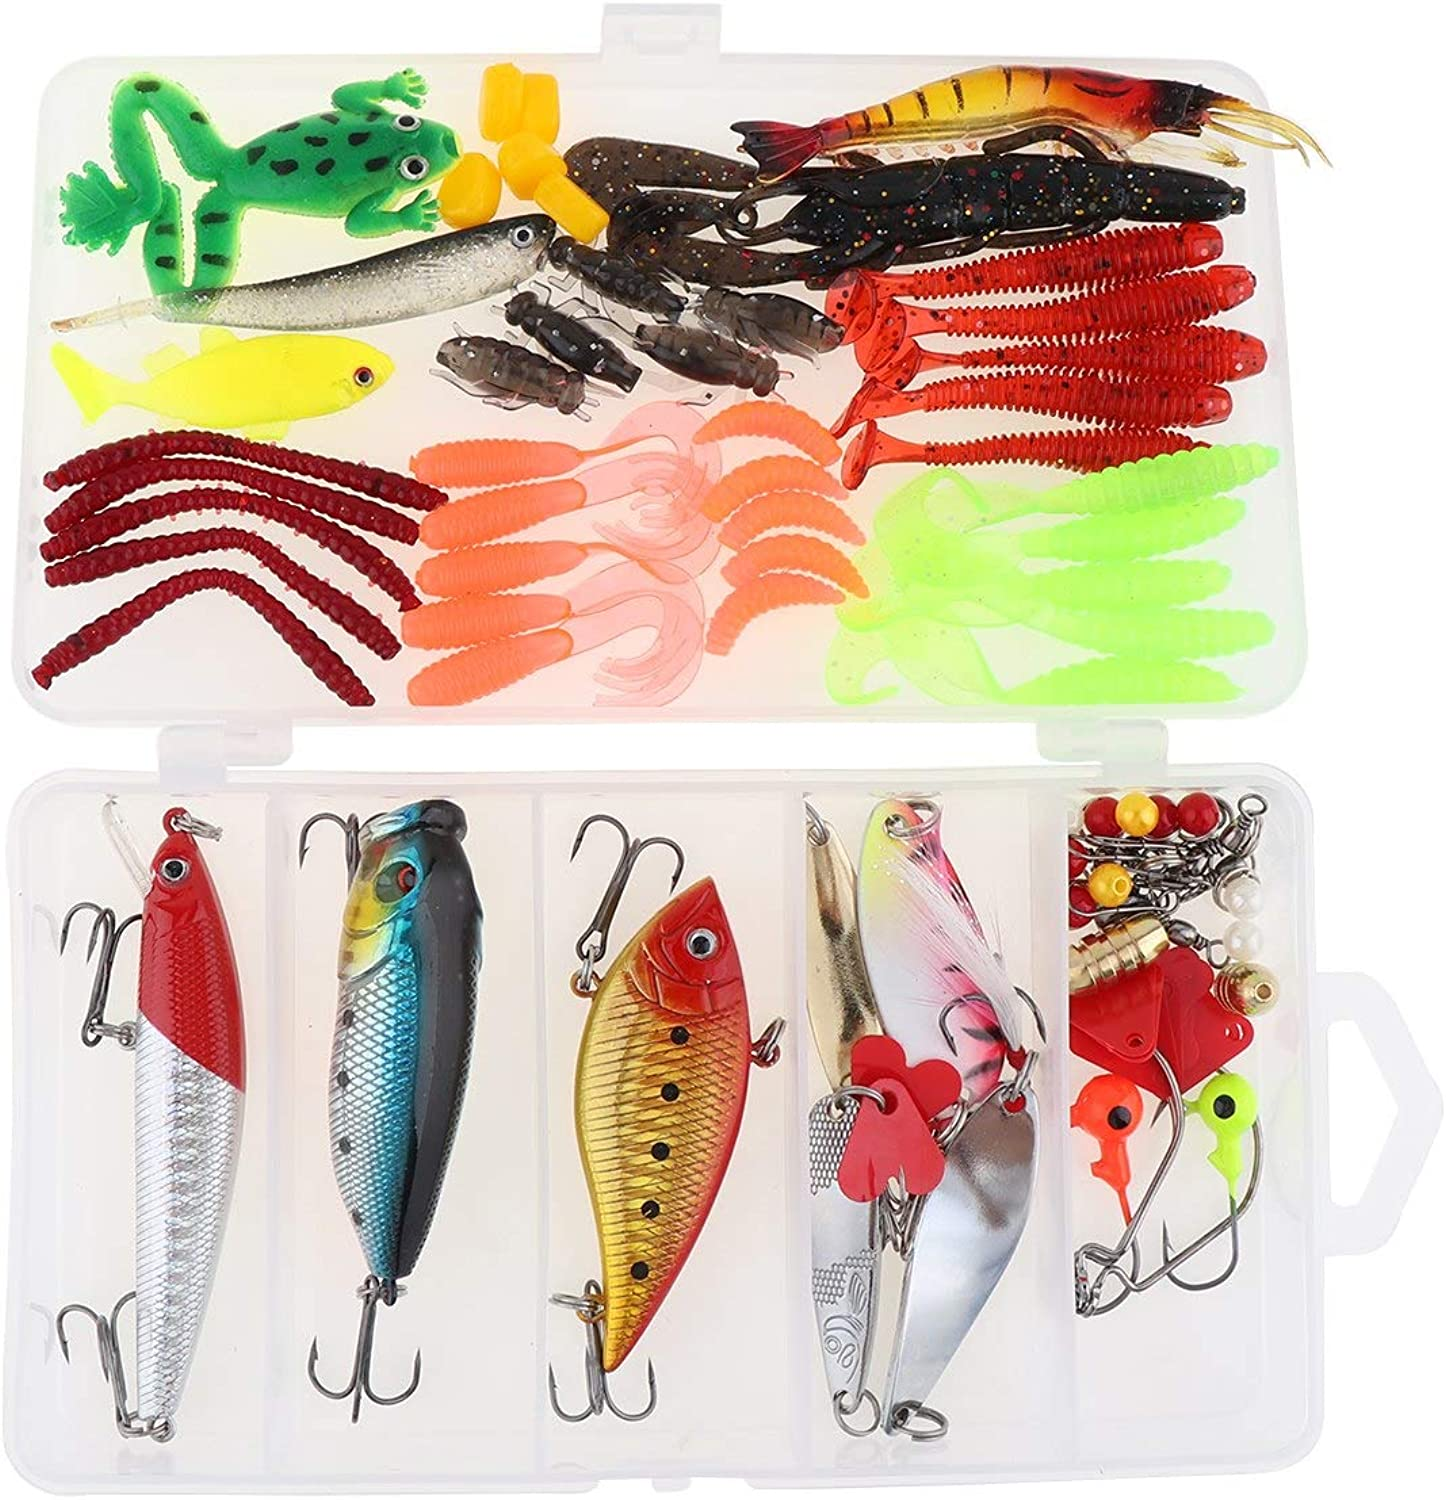 Generic 91pcs lot Almighty Fishing Lure Kit Mixed Minnow Popper Metal Spoon Lures Hook Fishing Accessories Set with Box